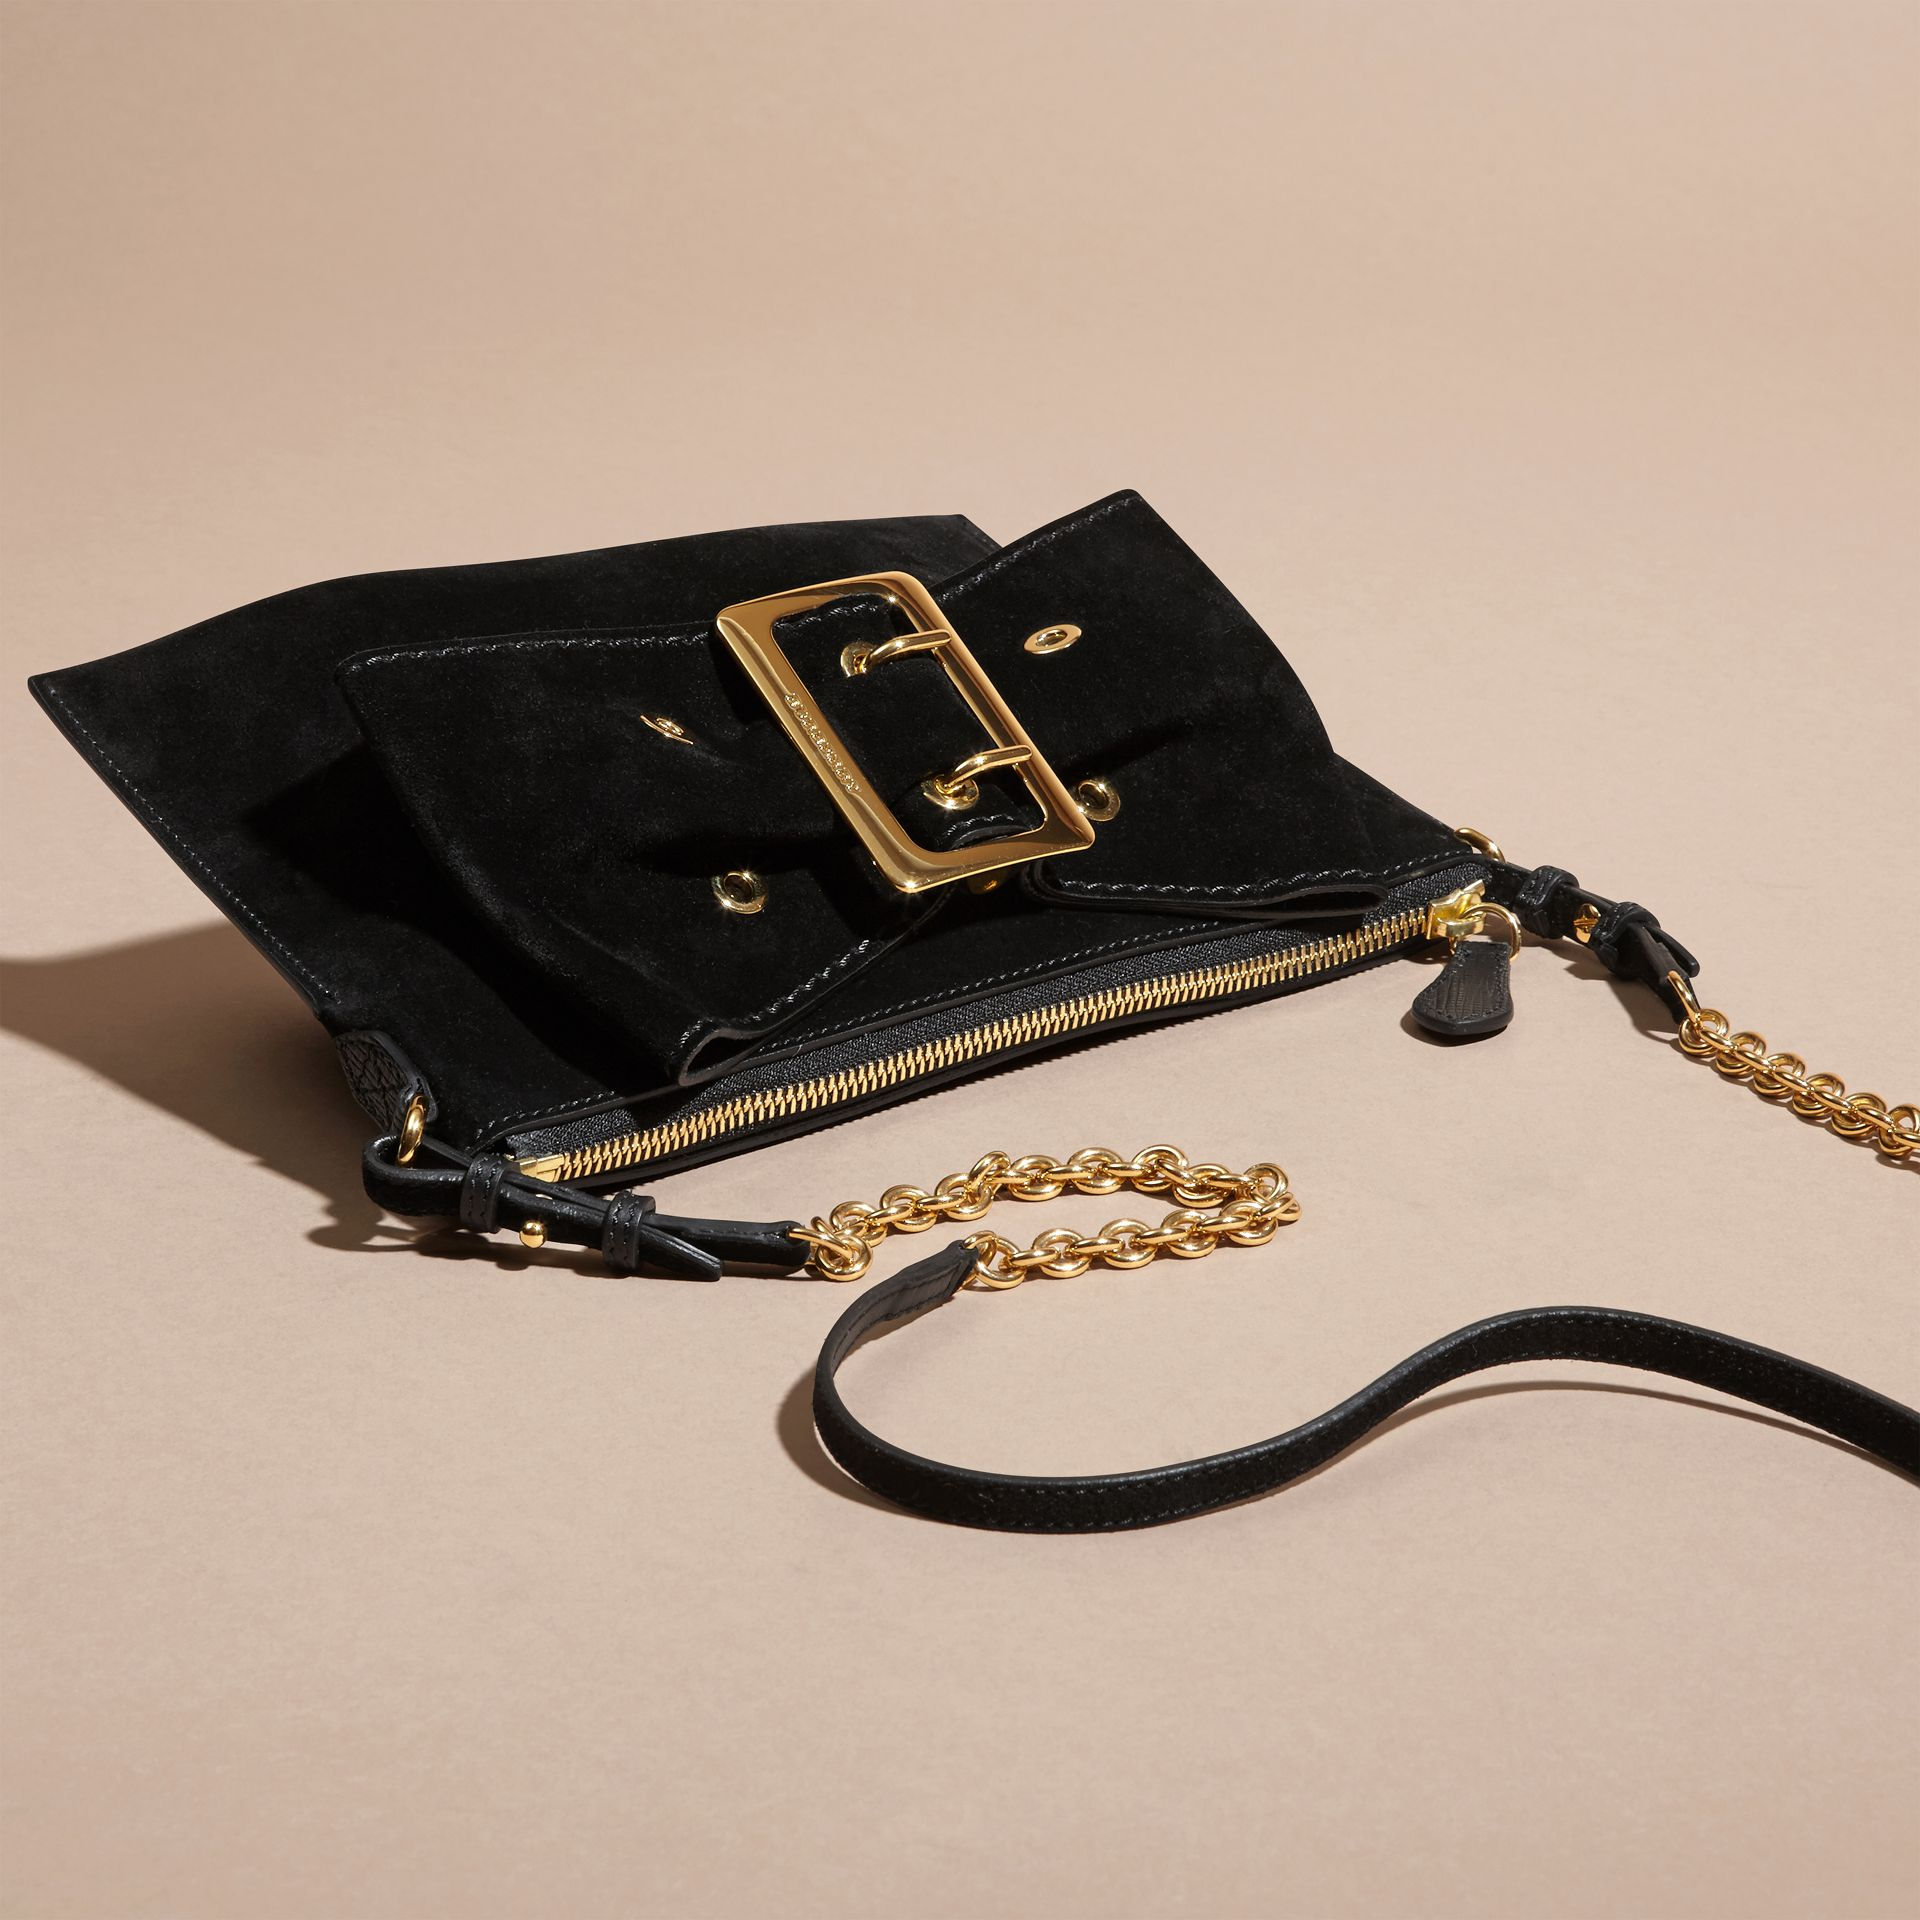 Suede Clutch Bag with Buckled Bow Detail in Black - gallery image 8